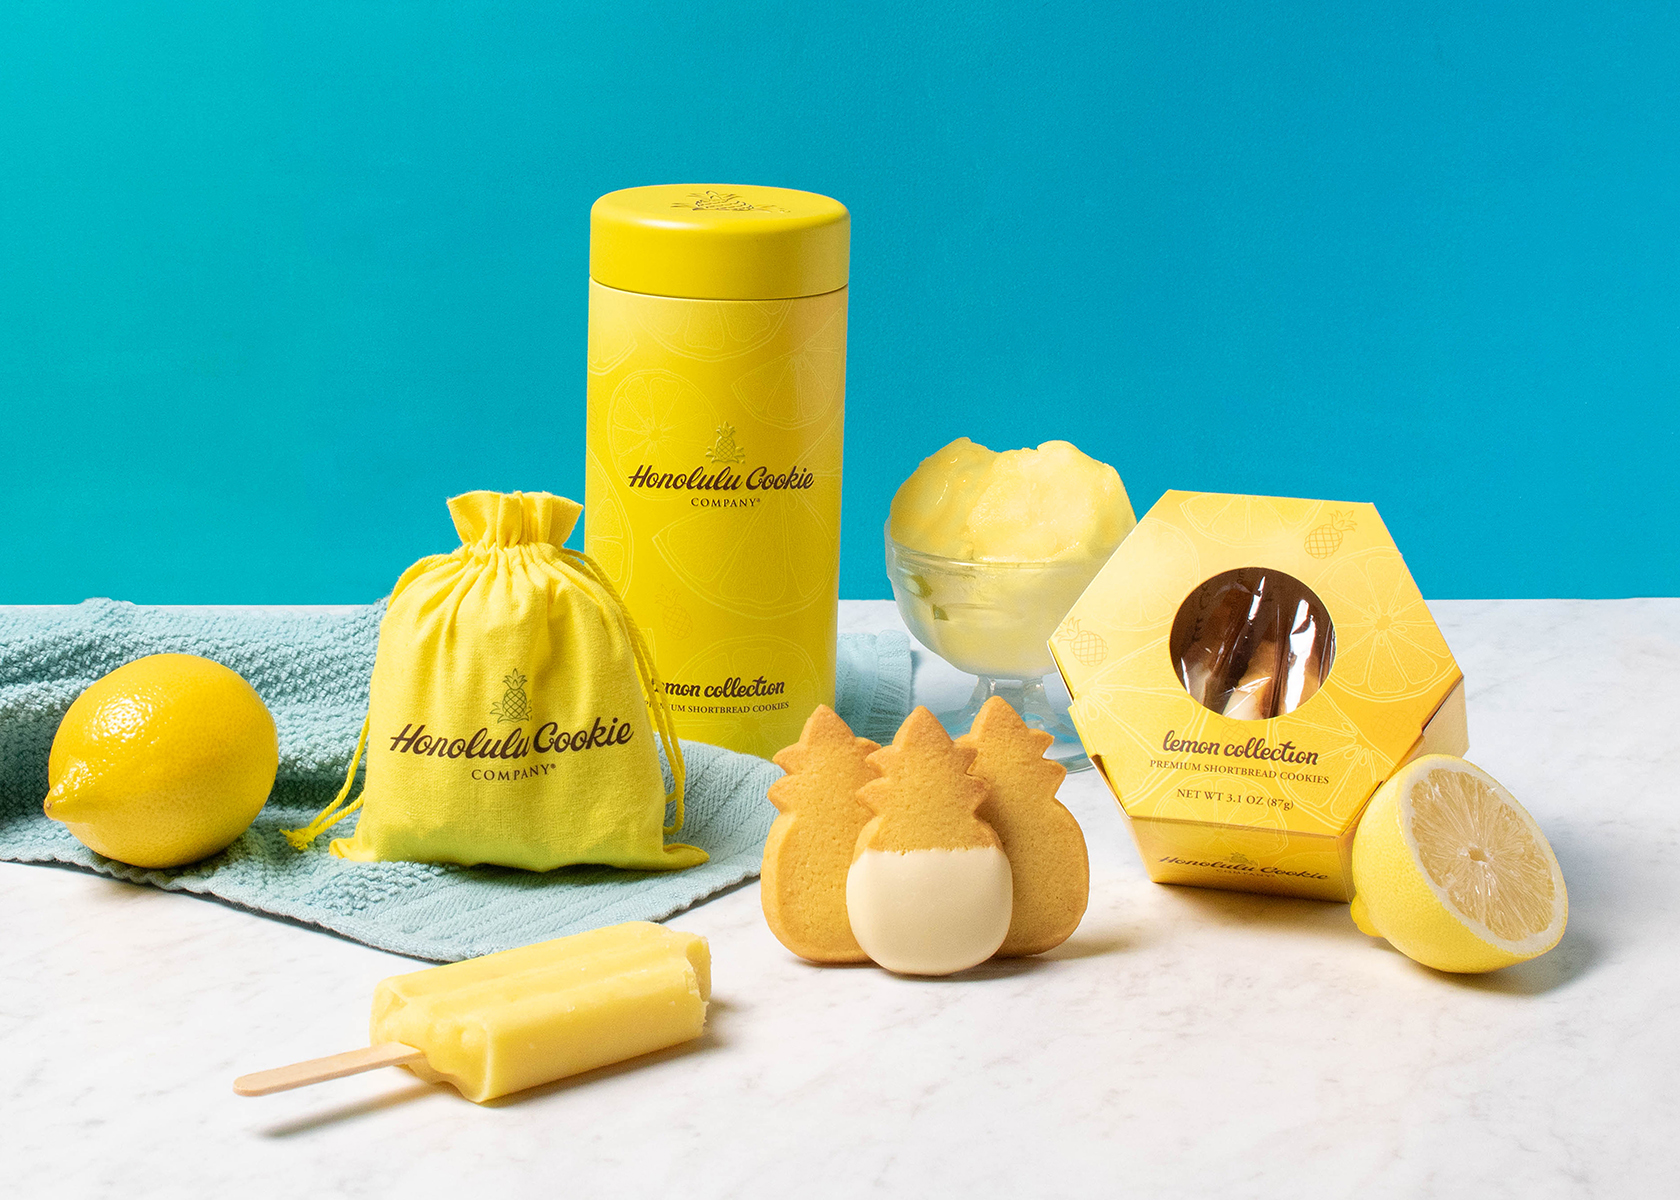 Lemon Collection from Honolulu Cookie Company